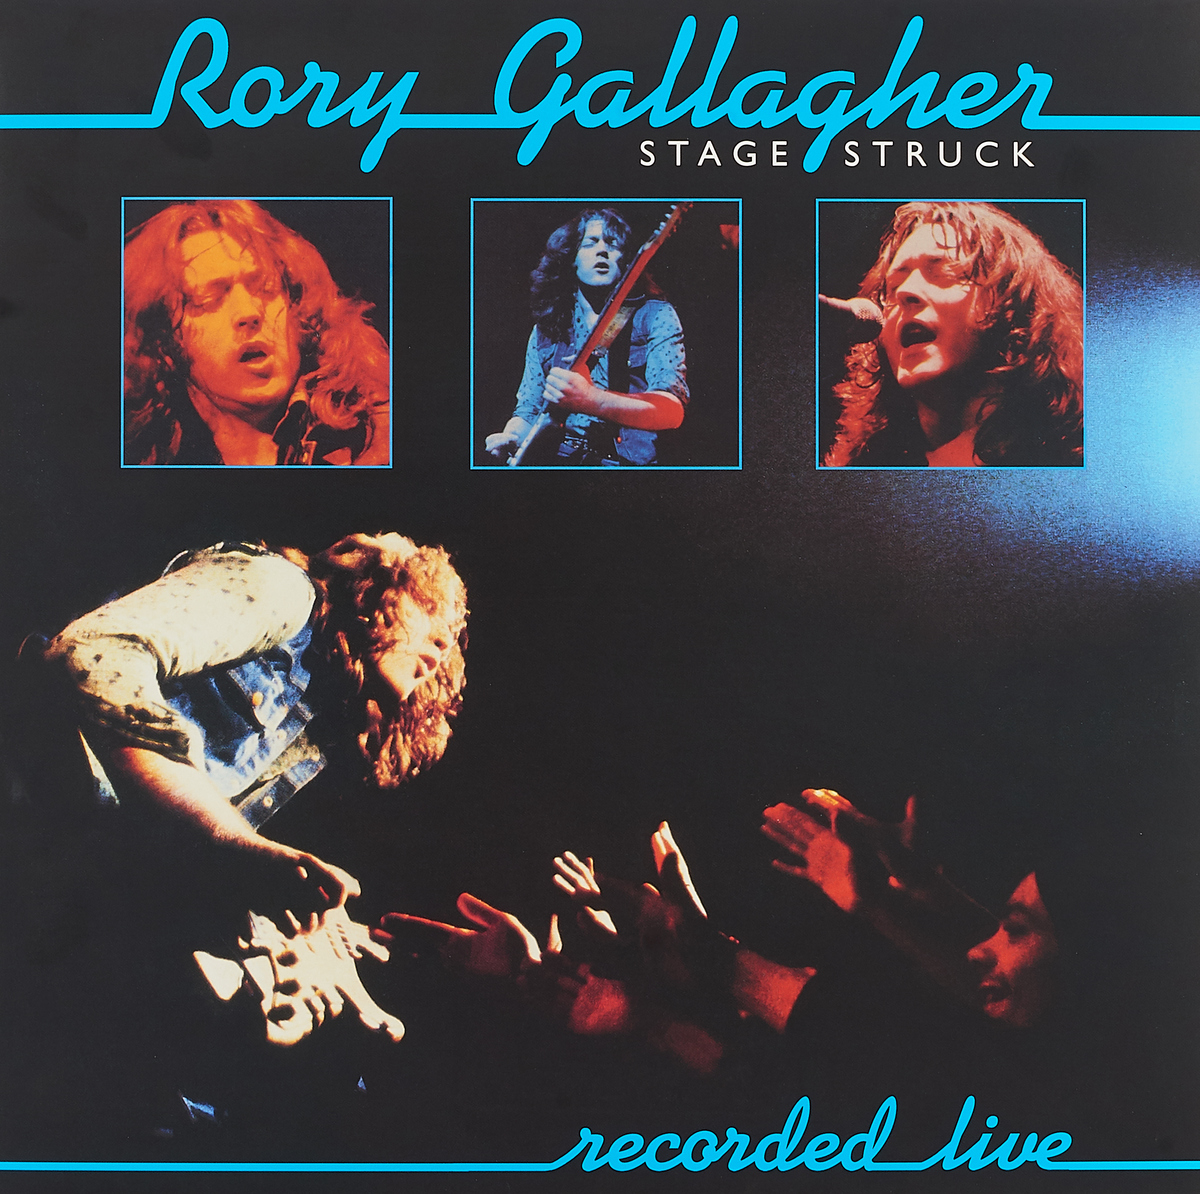 Рори Галлахер Rory Gallagher. Stage Struck (LP) рори галлахер gallagher rory live in europe hq lp